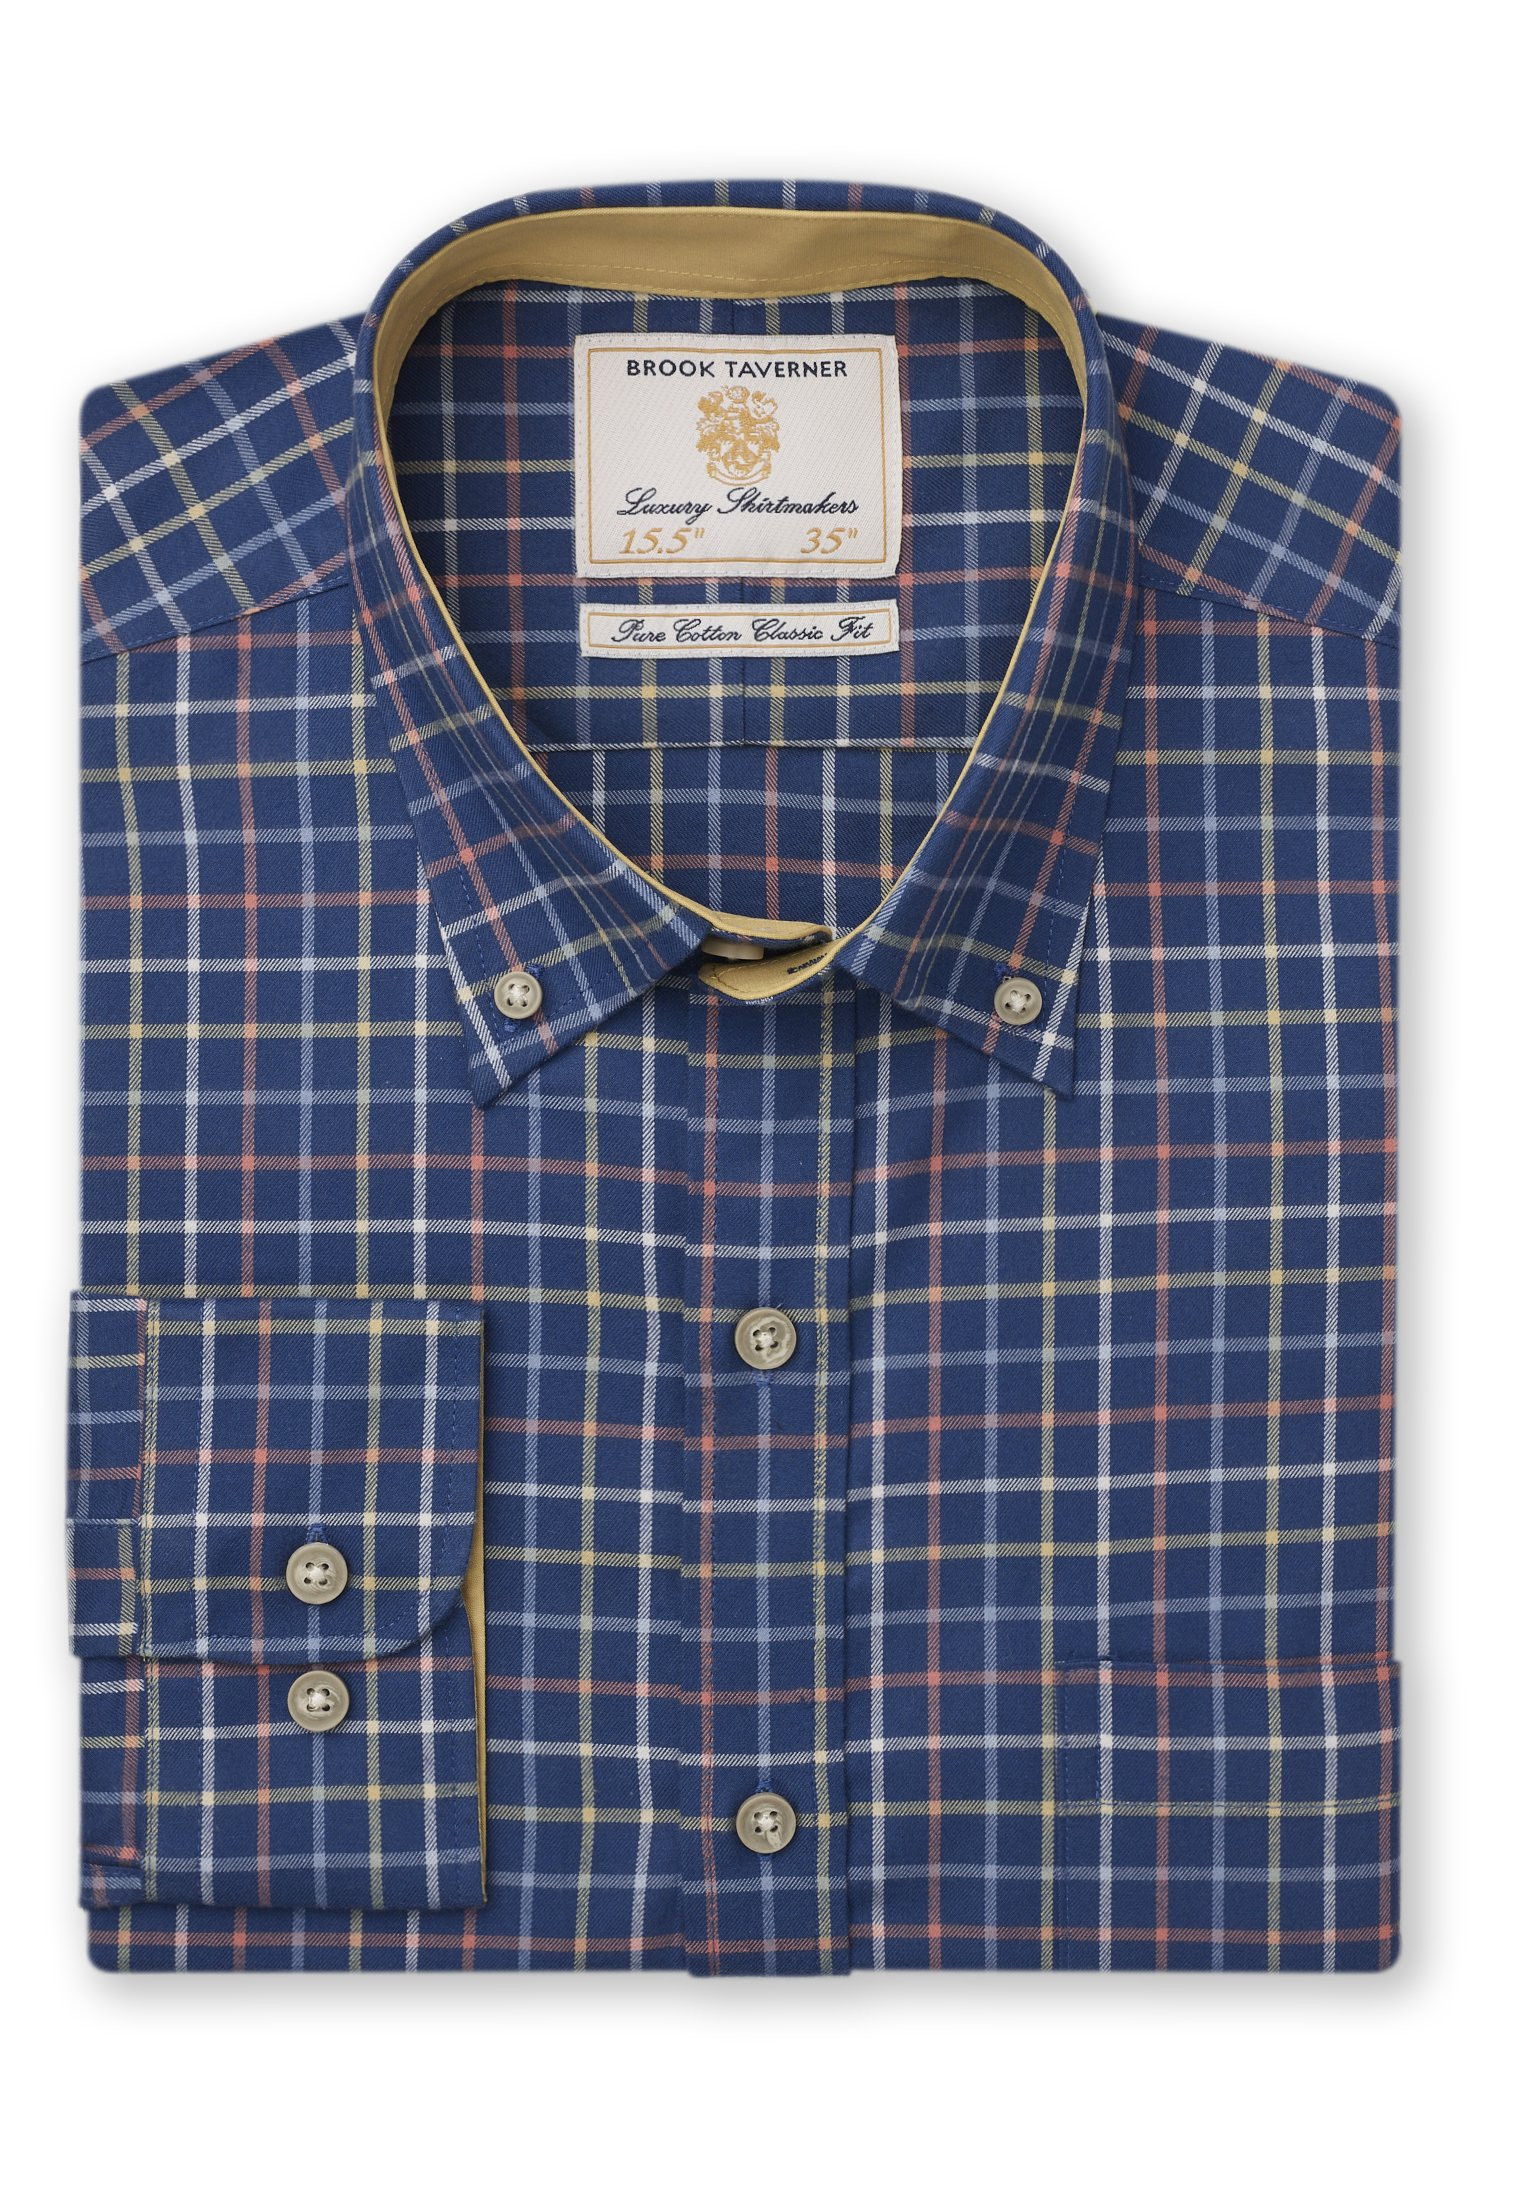 Short, Regular And Long Sleeve Navy With Blue, White, Yellow and Orange Check Single Cuff Shirt